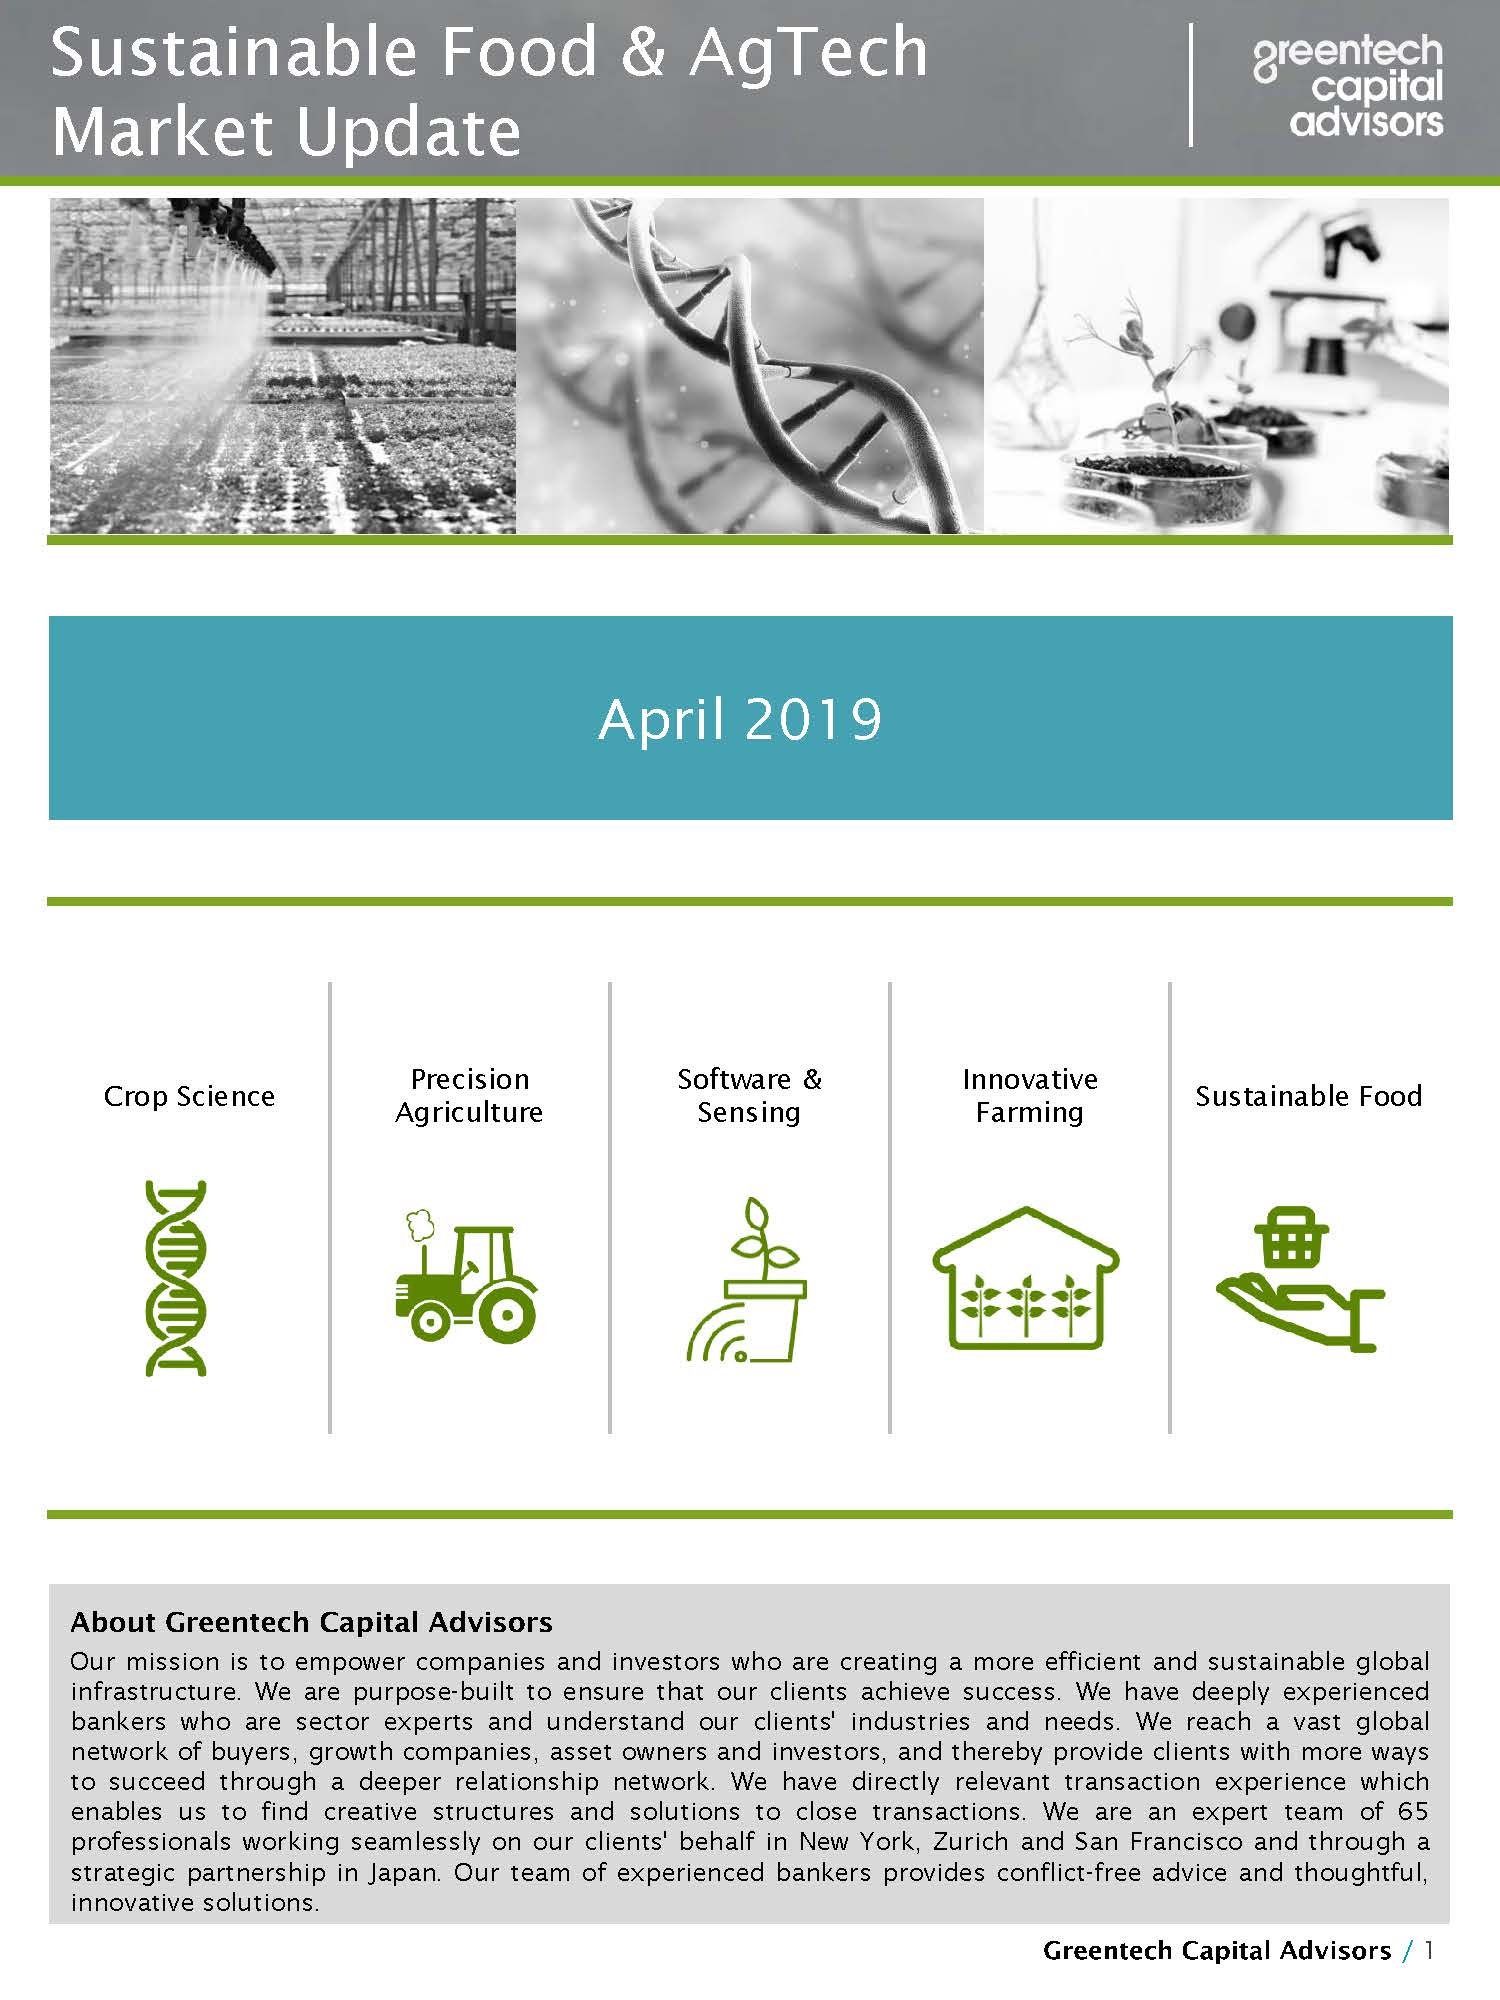 Sustainable Food & AgTech Market Update Newsletter - April 2019